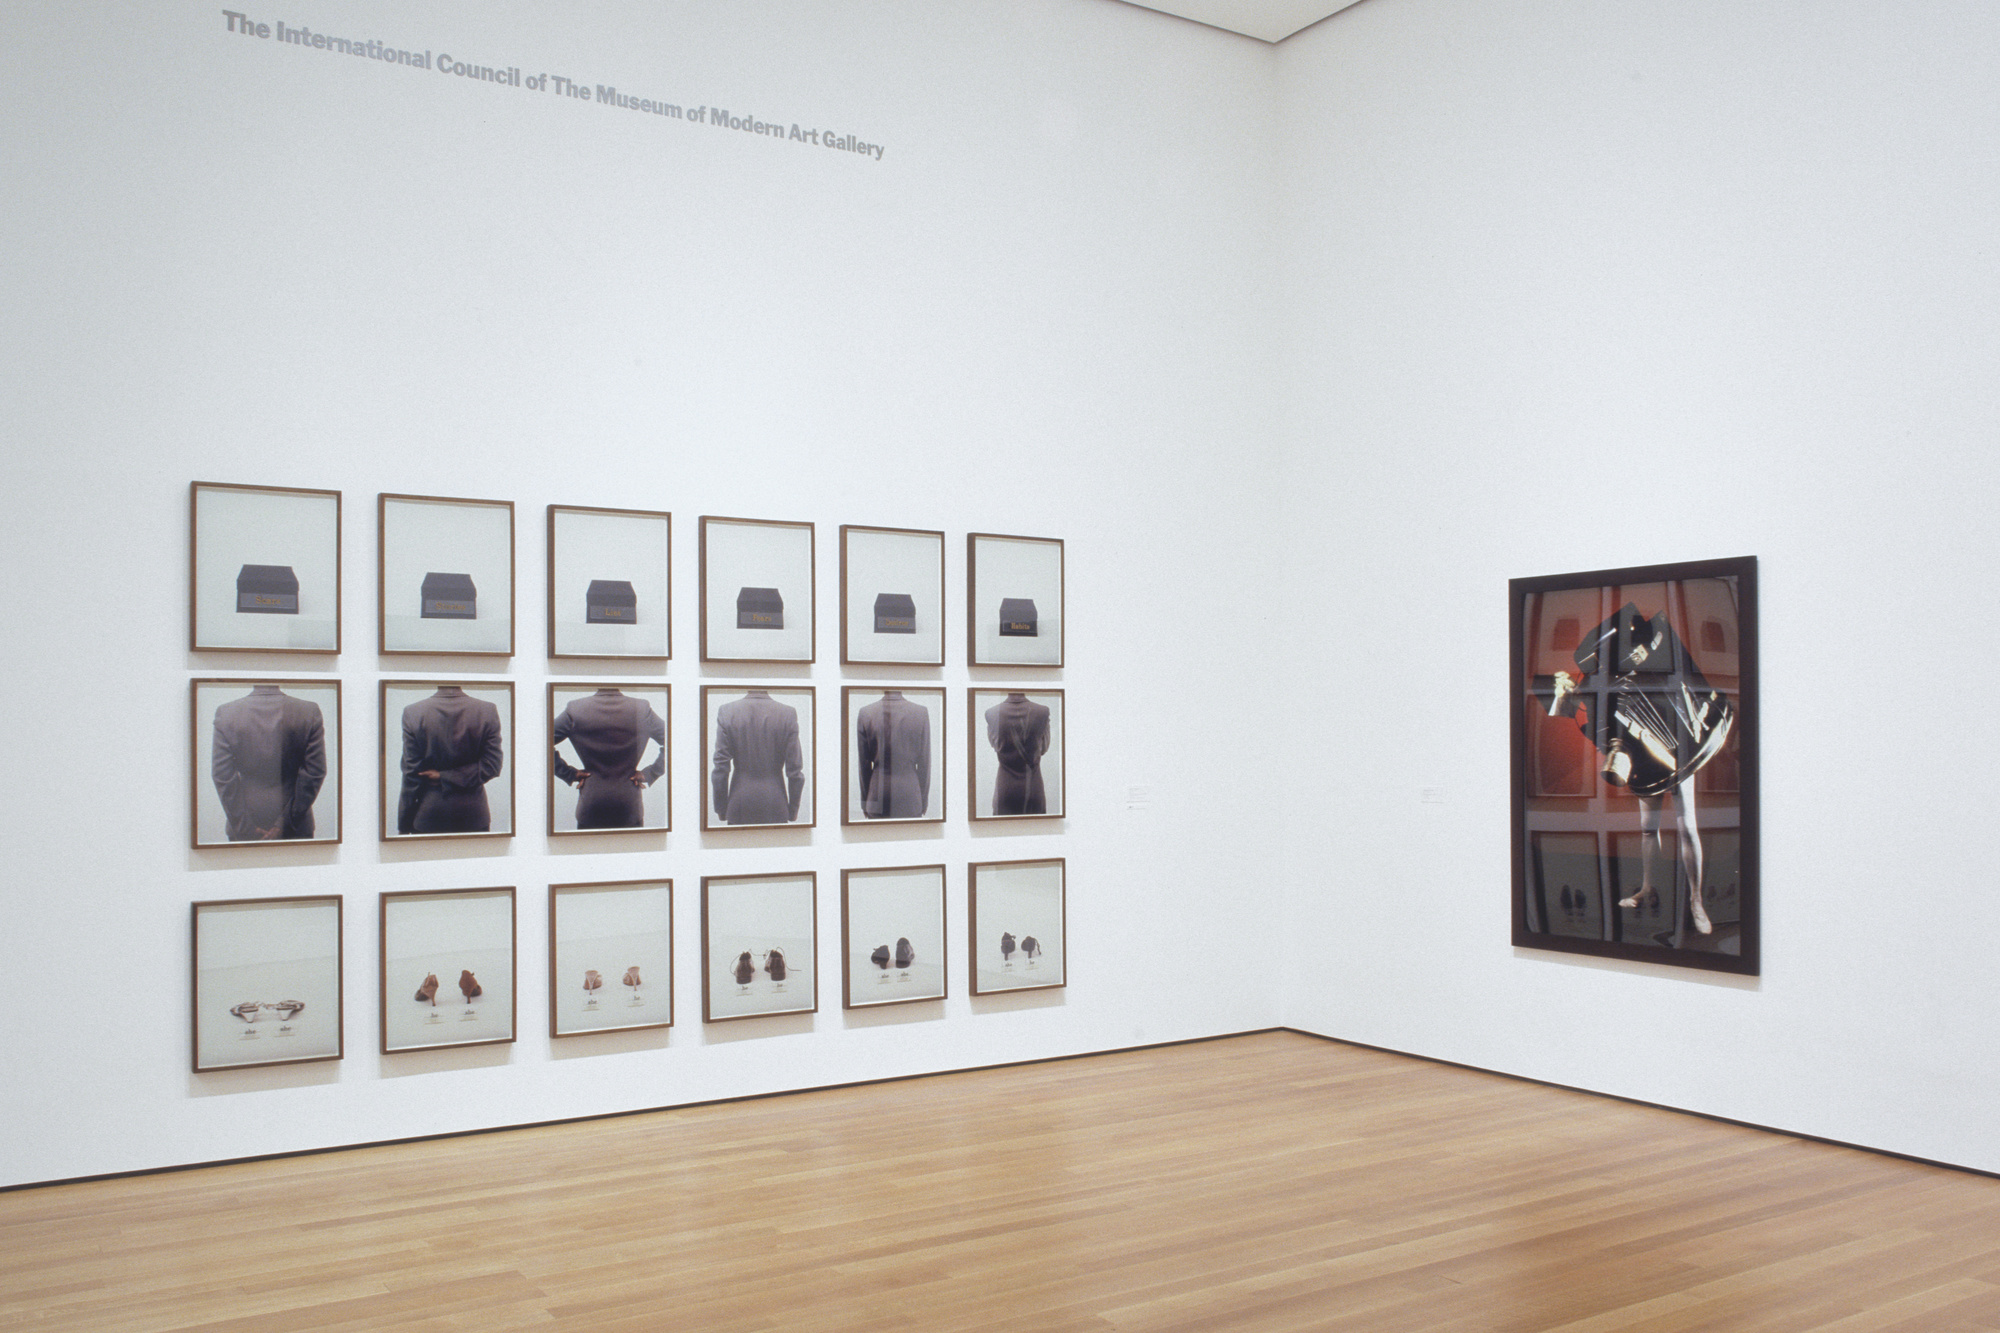 Installation view of Contemporary Voices: Works from The UBS Art Collection at The Museum of Modern Art, New York. Photo: Thomas Griesel